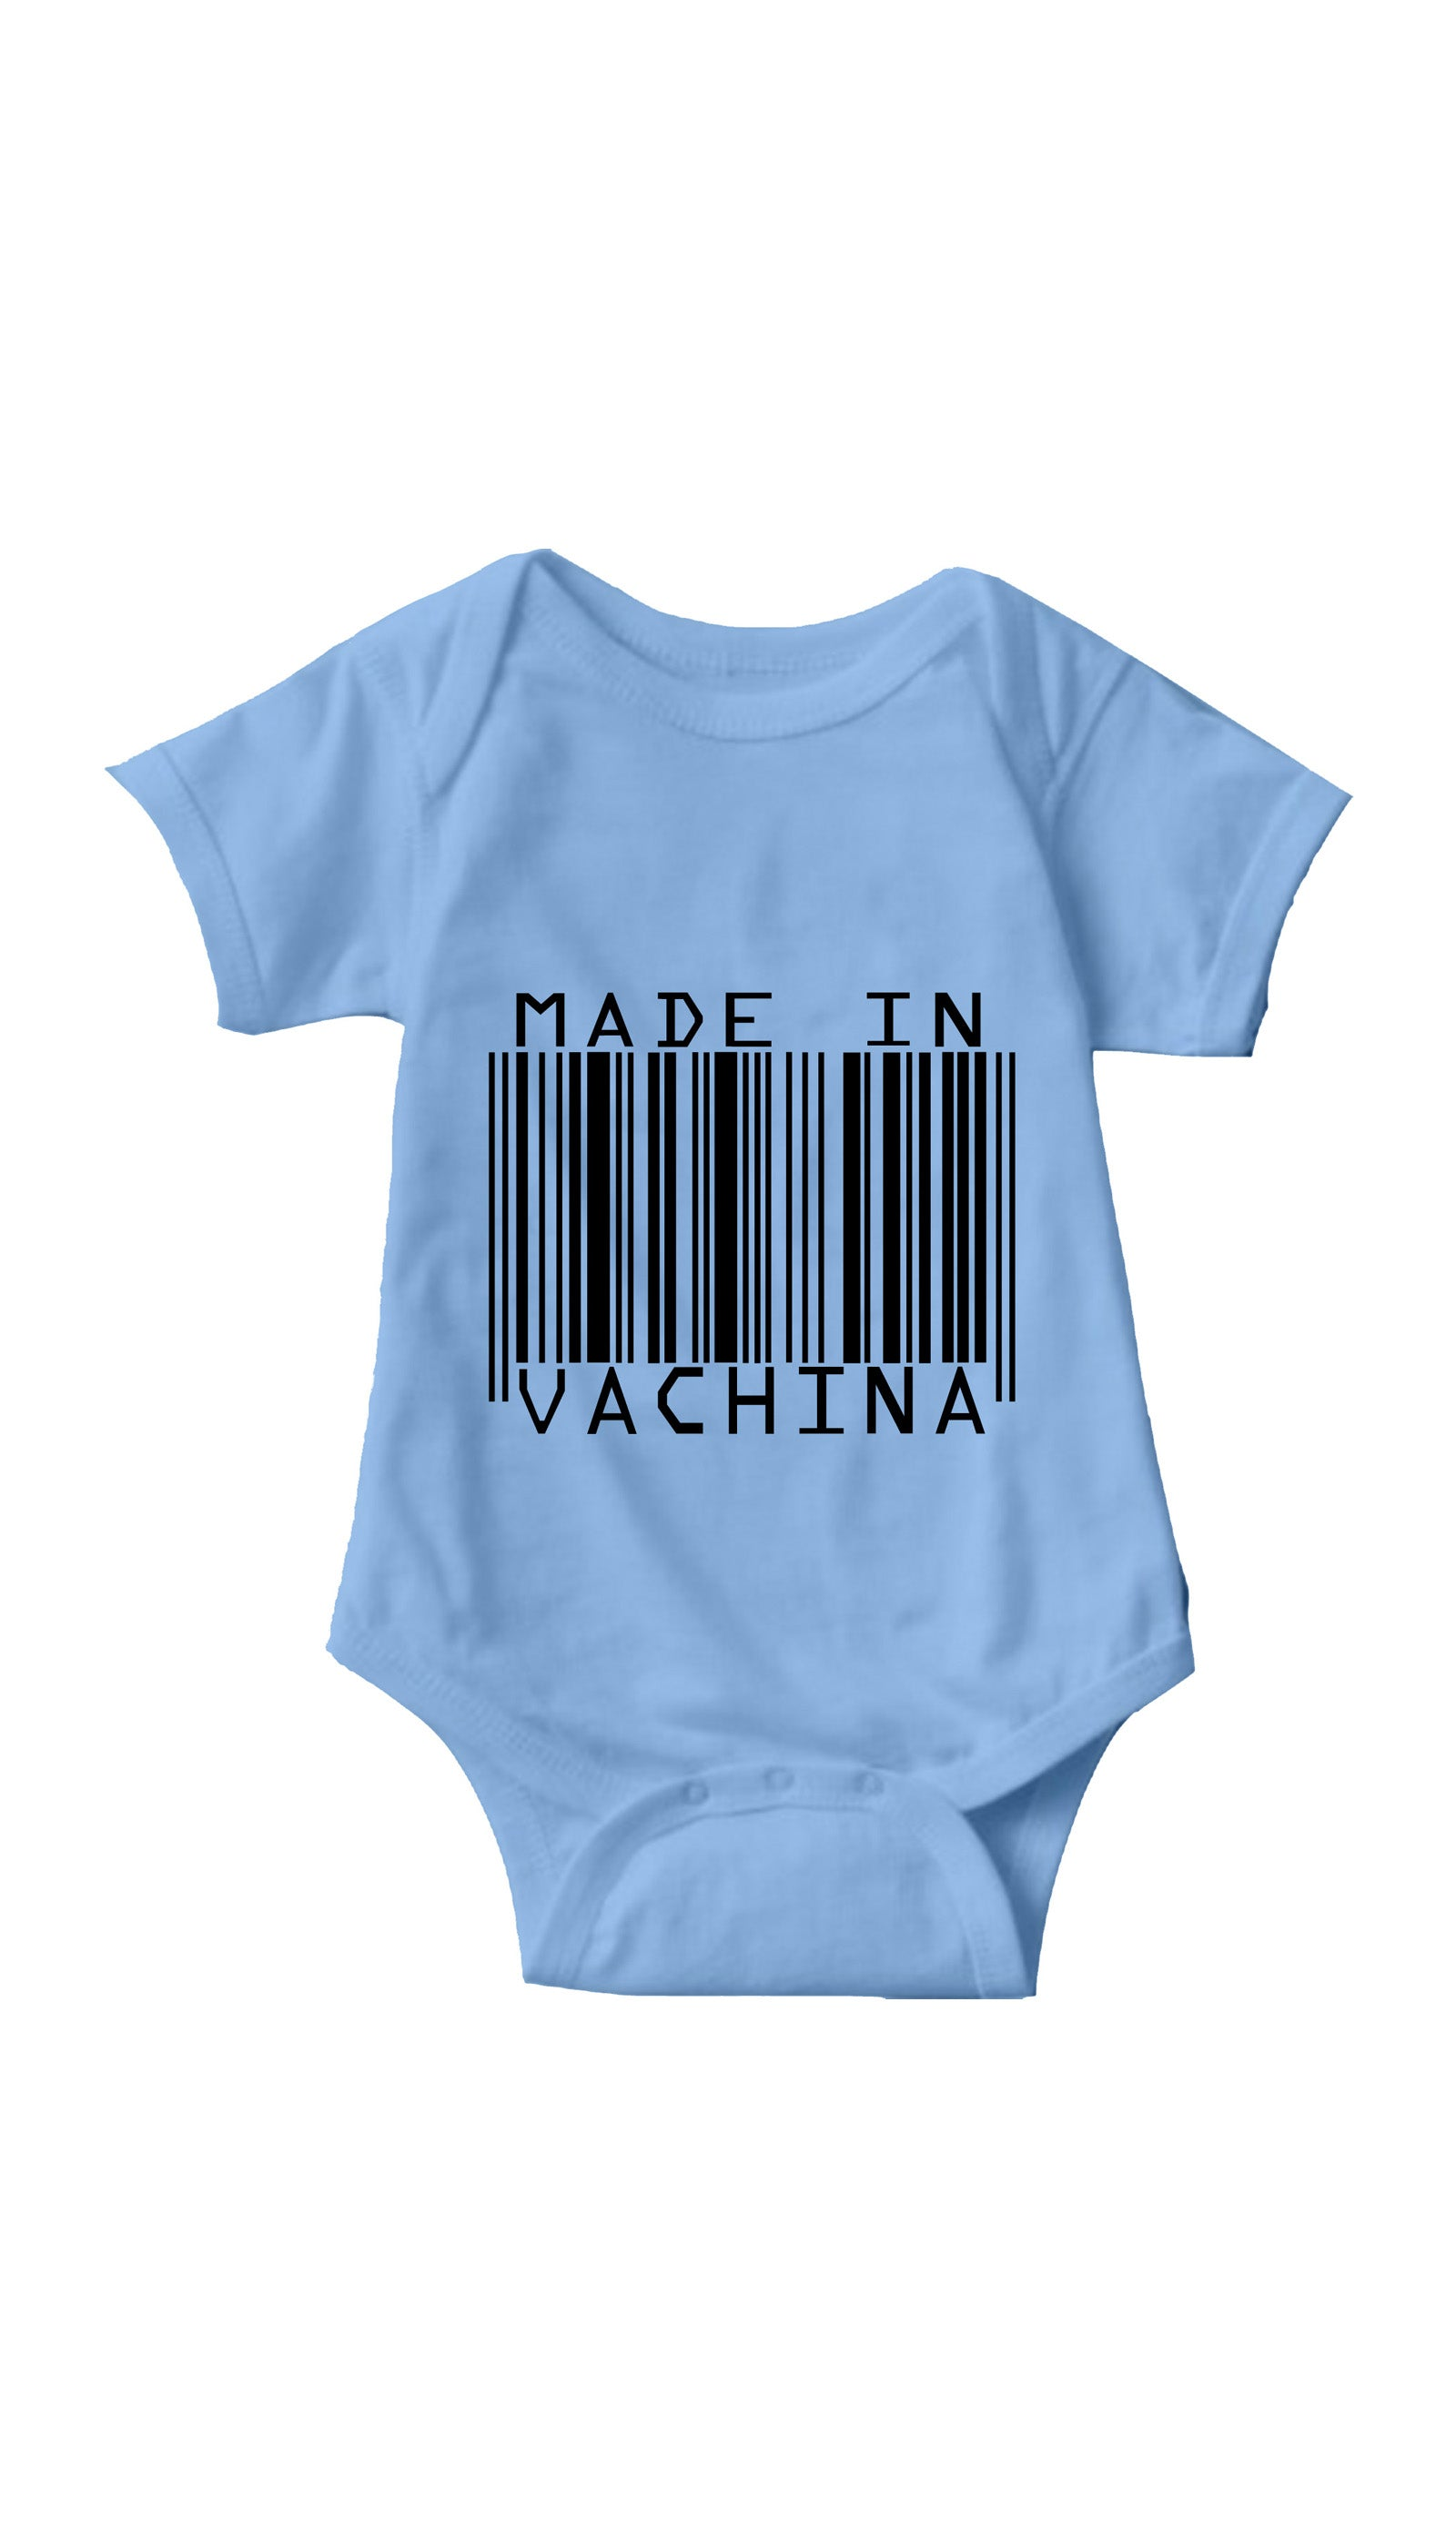 Made In Vachina Light Blue Infant Onesie | Sarcastic ME